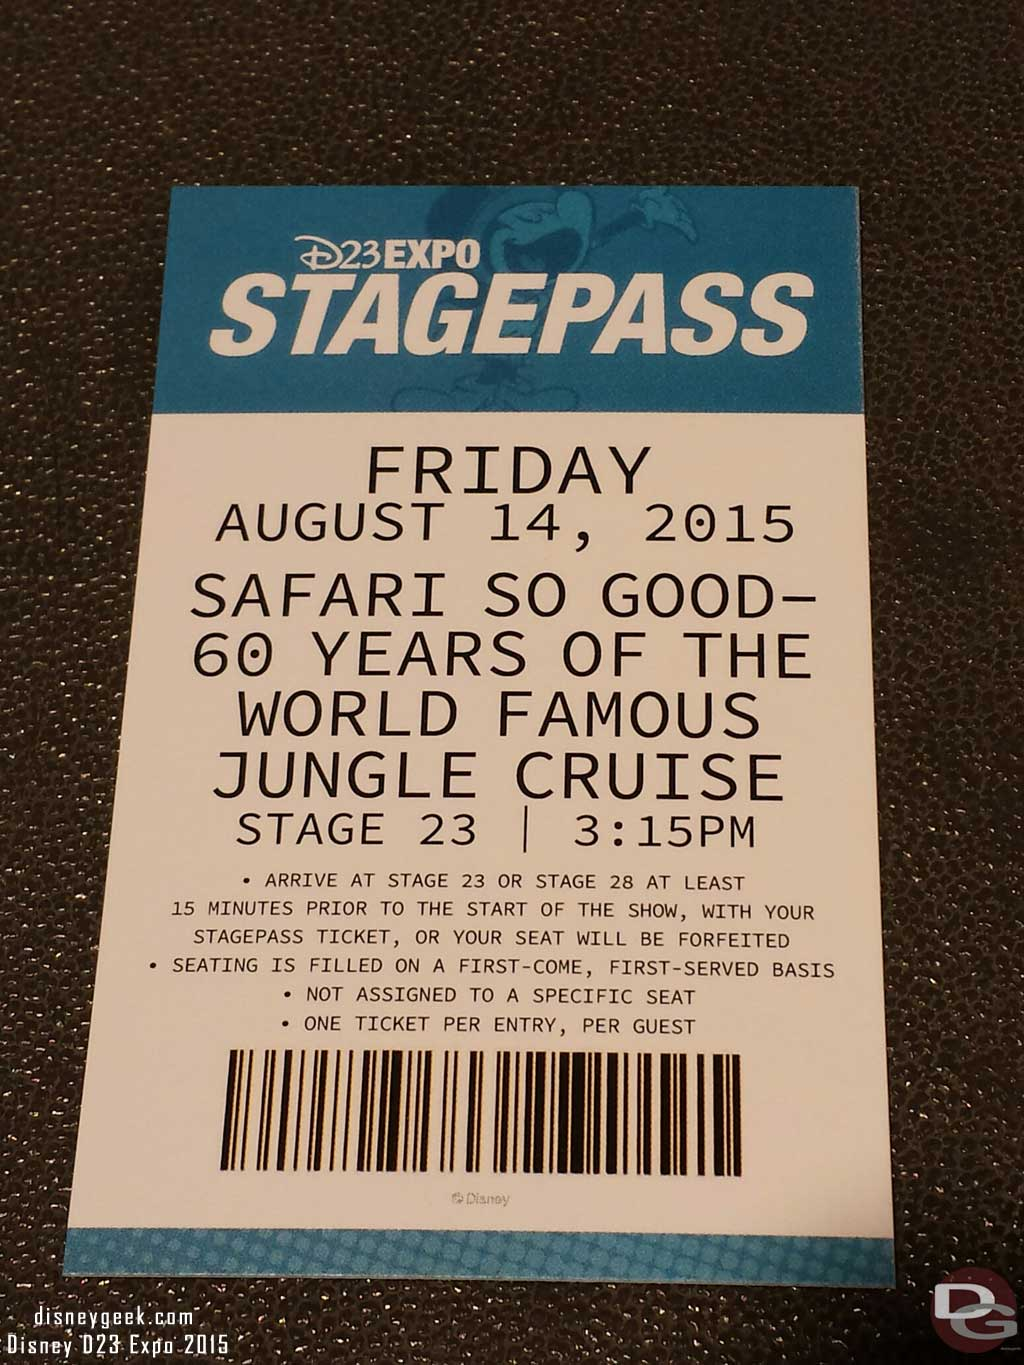 Secured a StagePass for the Jungle Cruise presentation #D23Expo